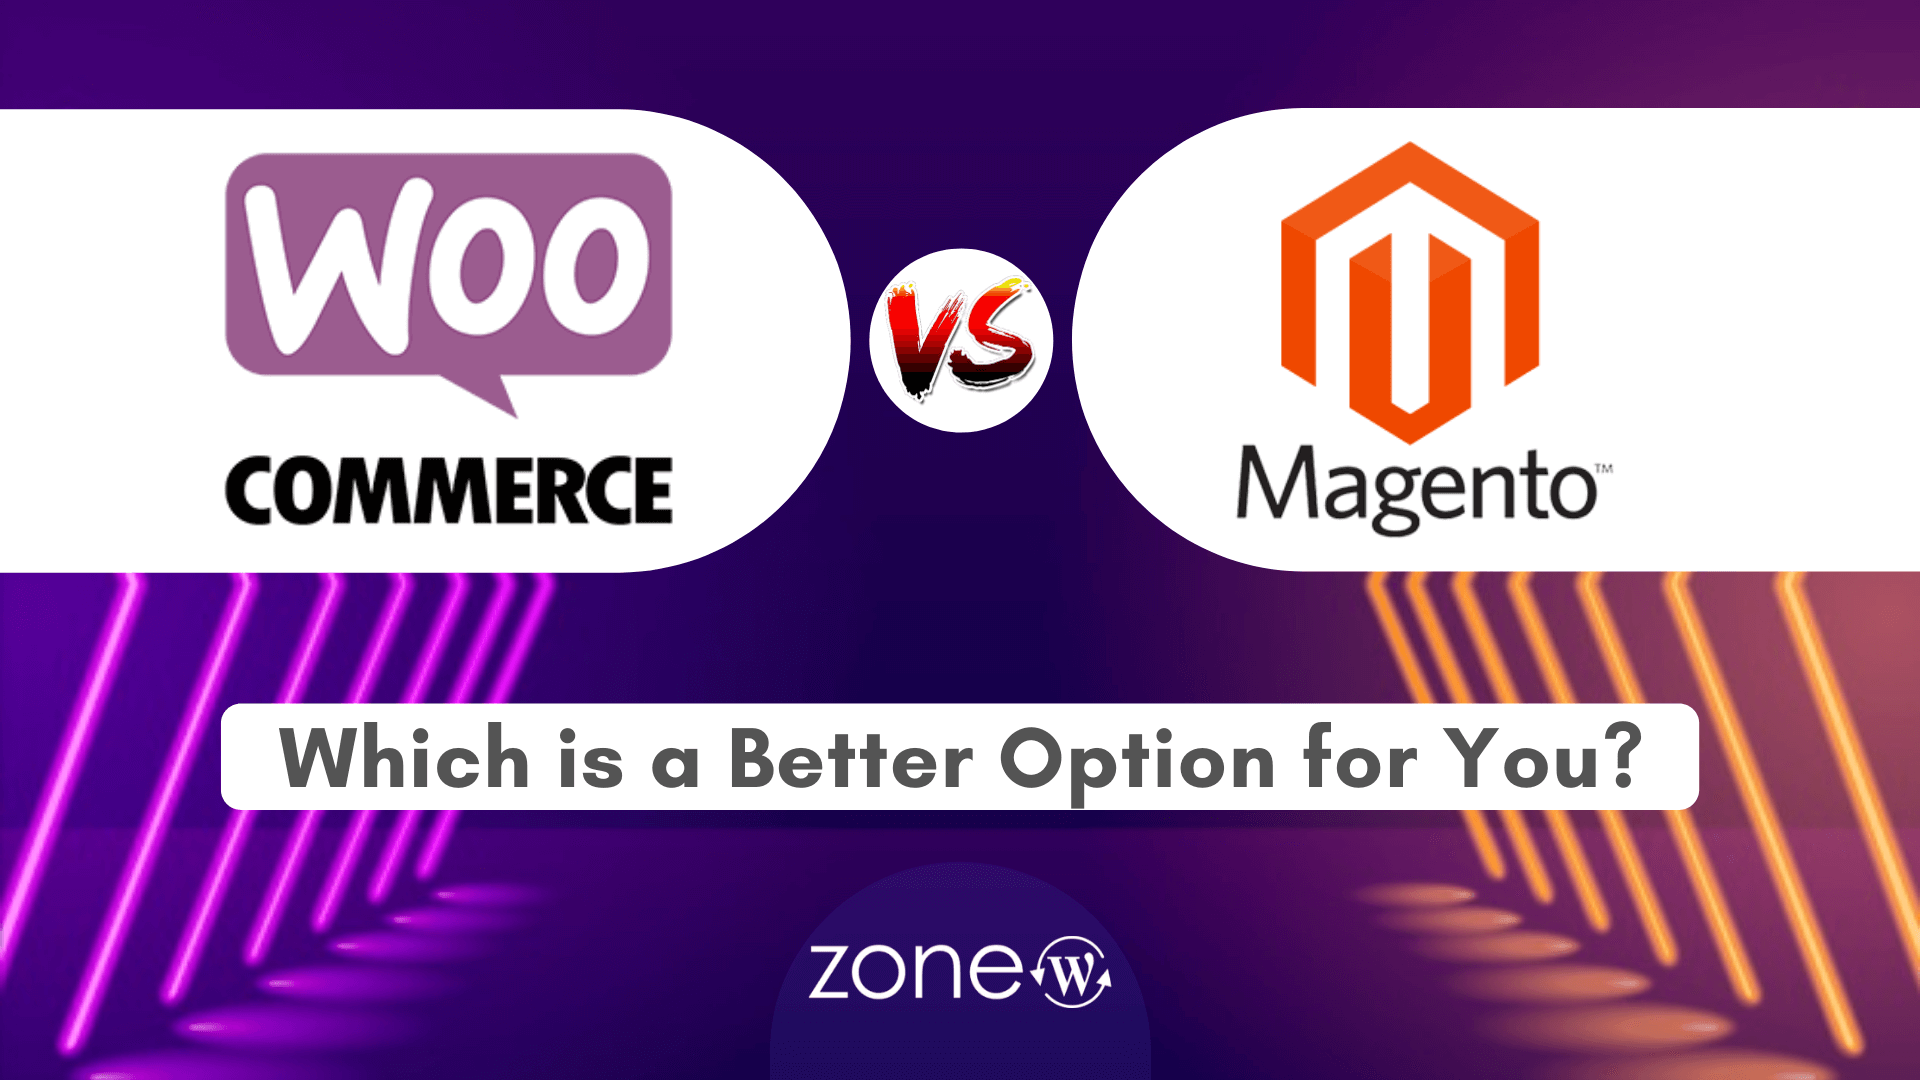 WooCommerce vs Magento: Which is a Better Option for You